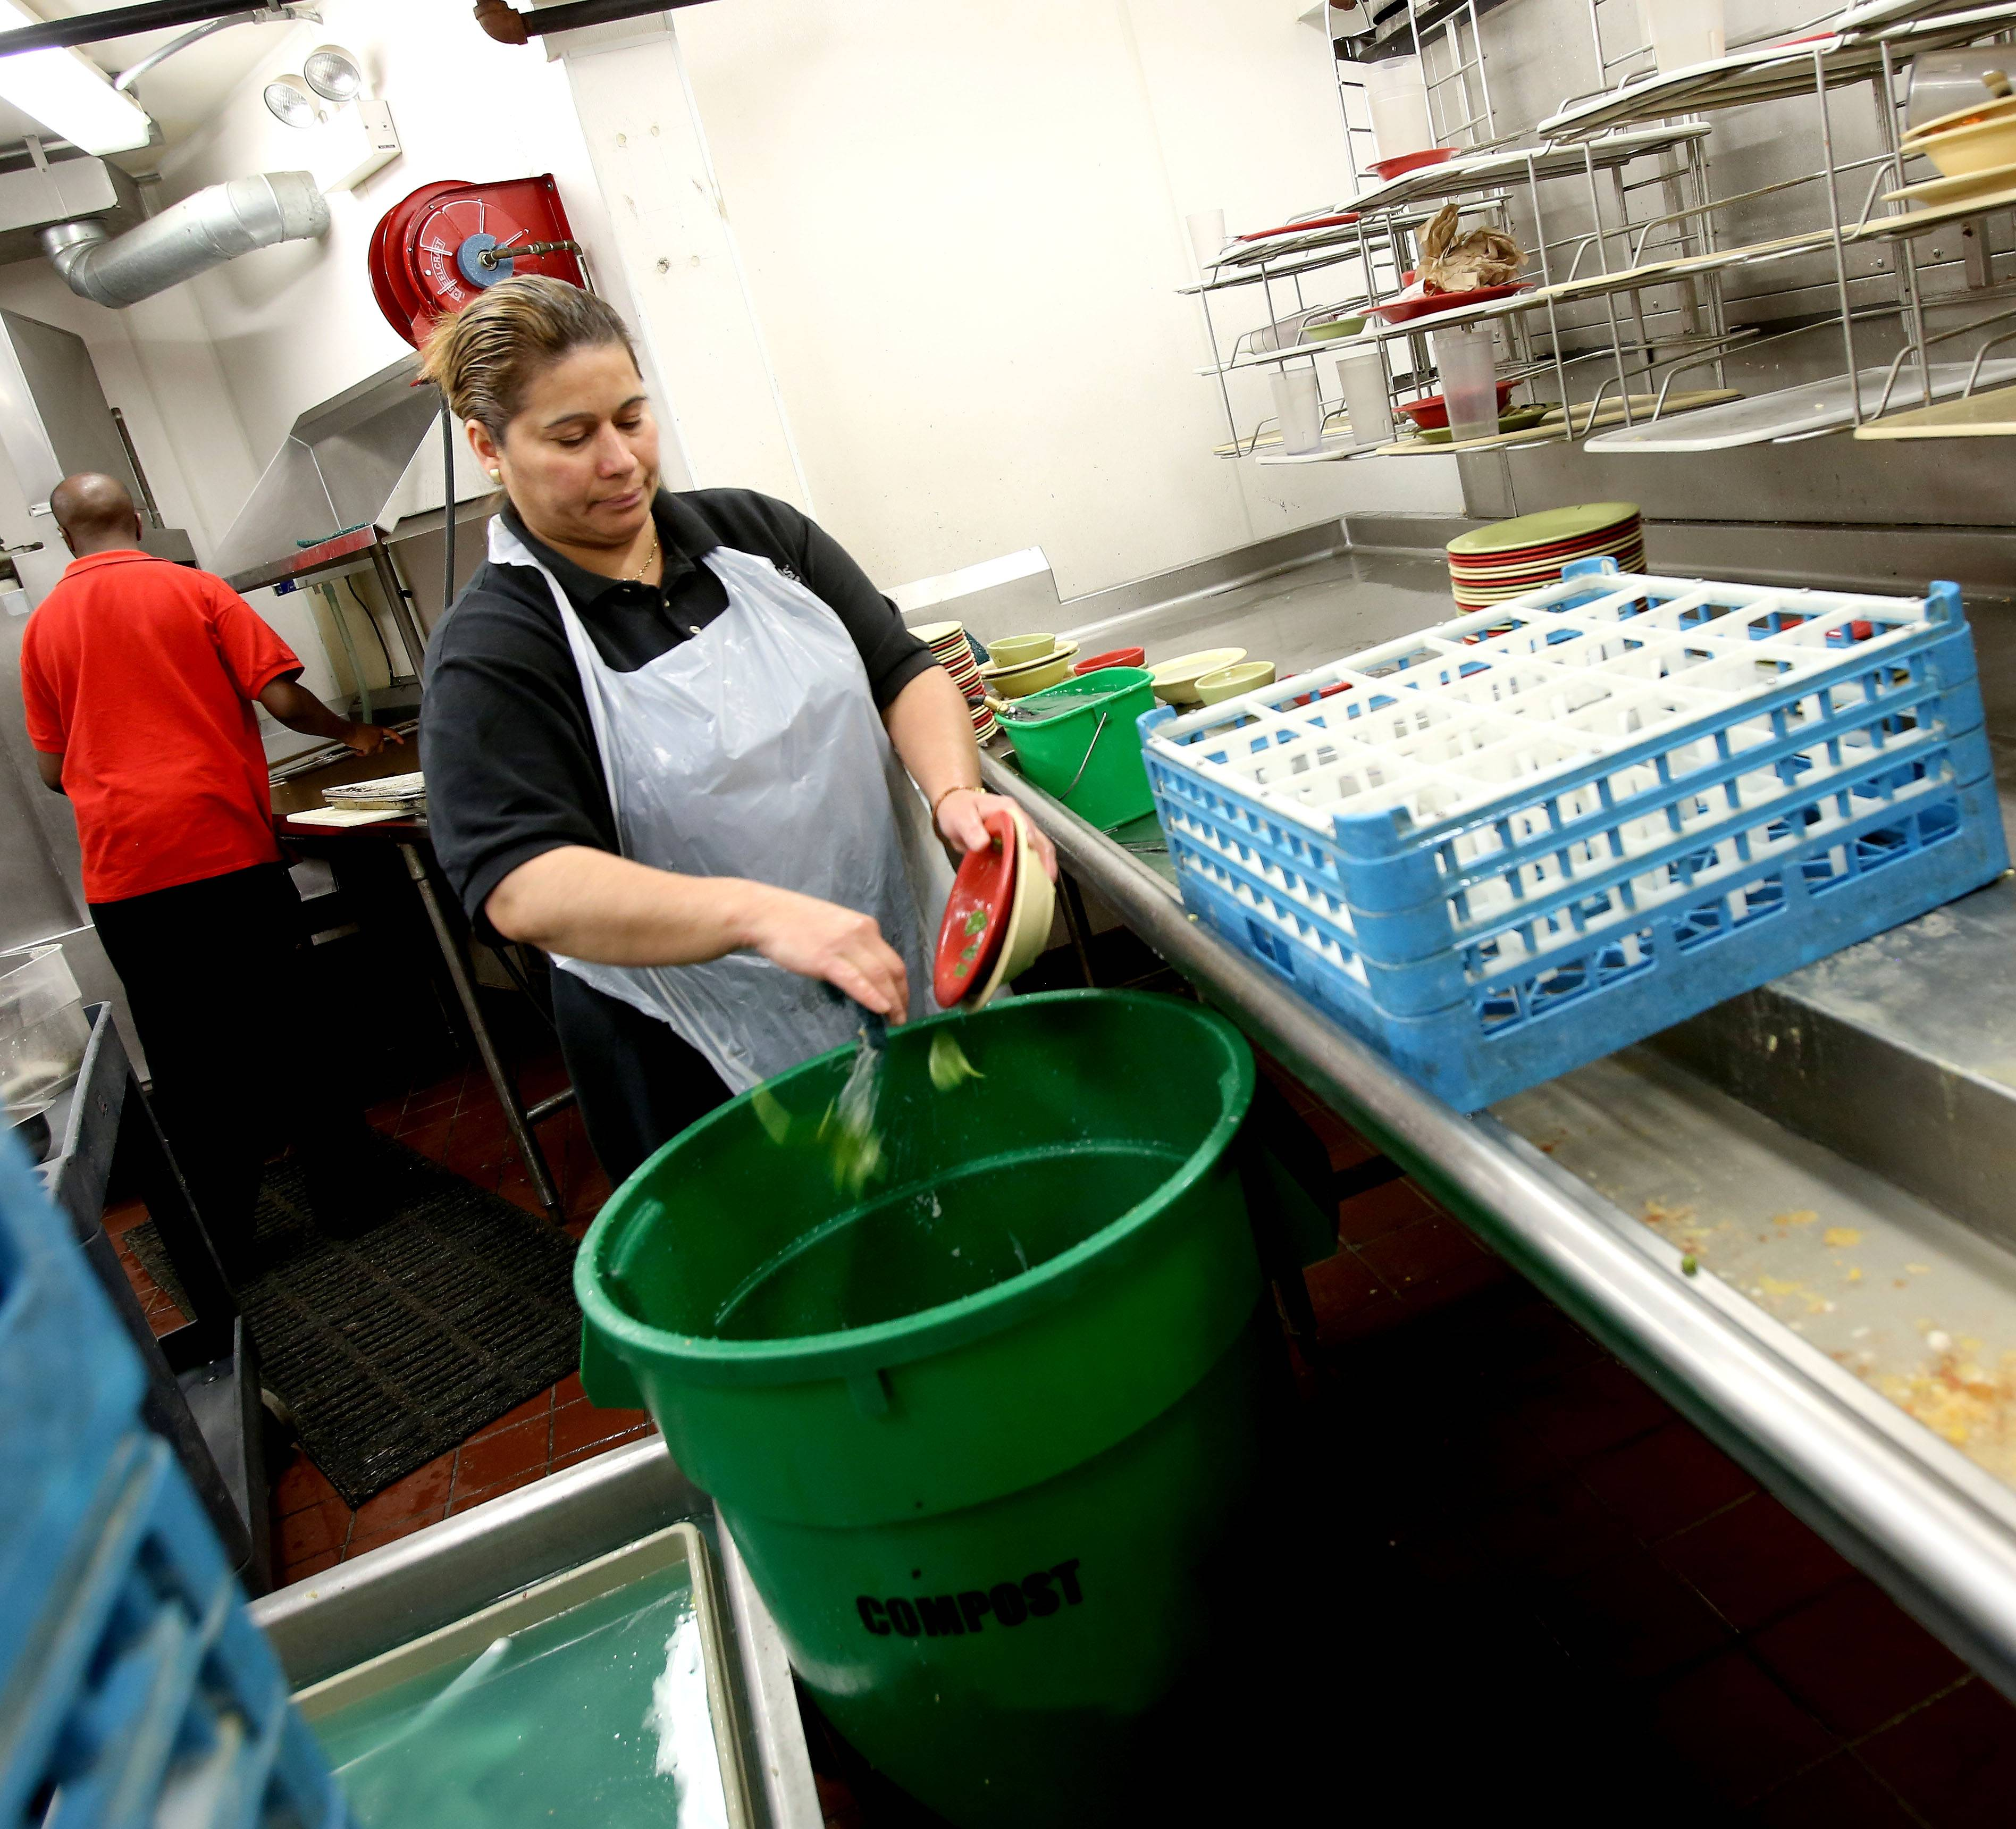 Laura Guzman adds food scraps students miss to the compost pile in the cafeteria at North Central College in Naperville.